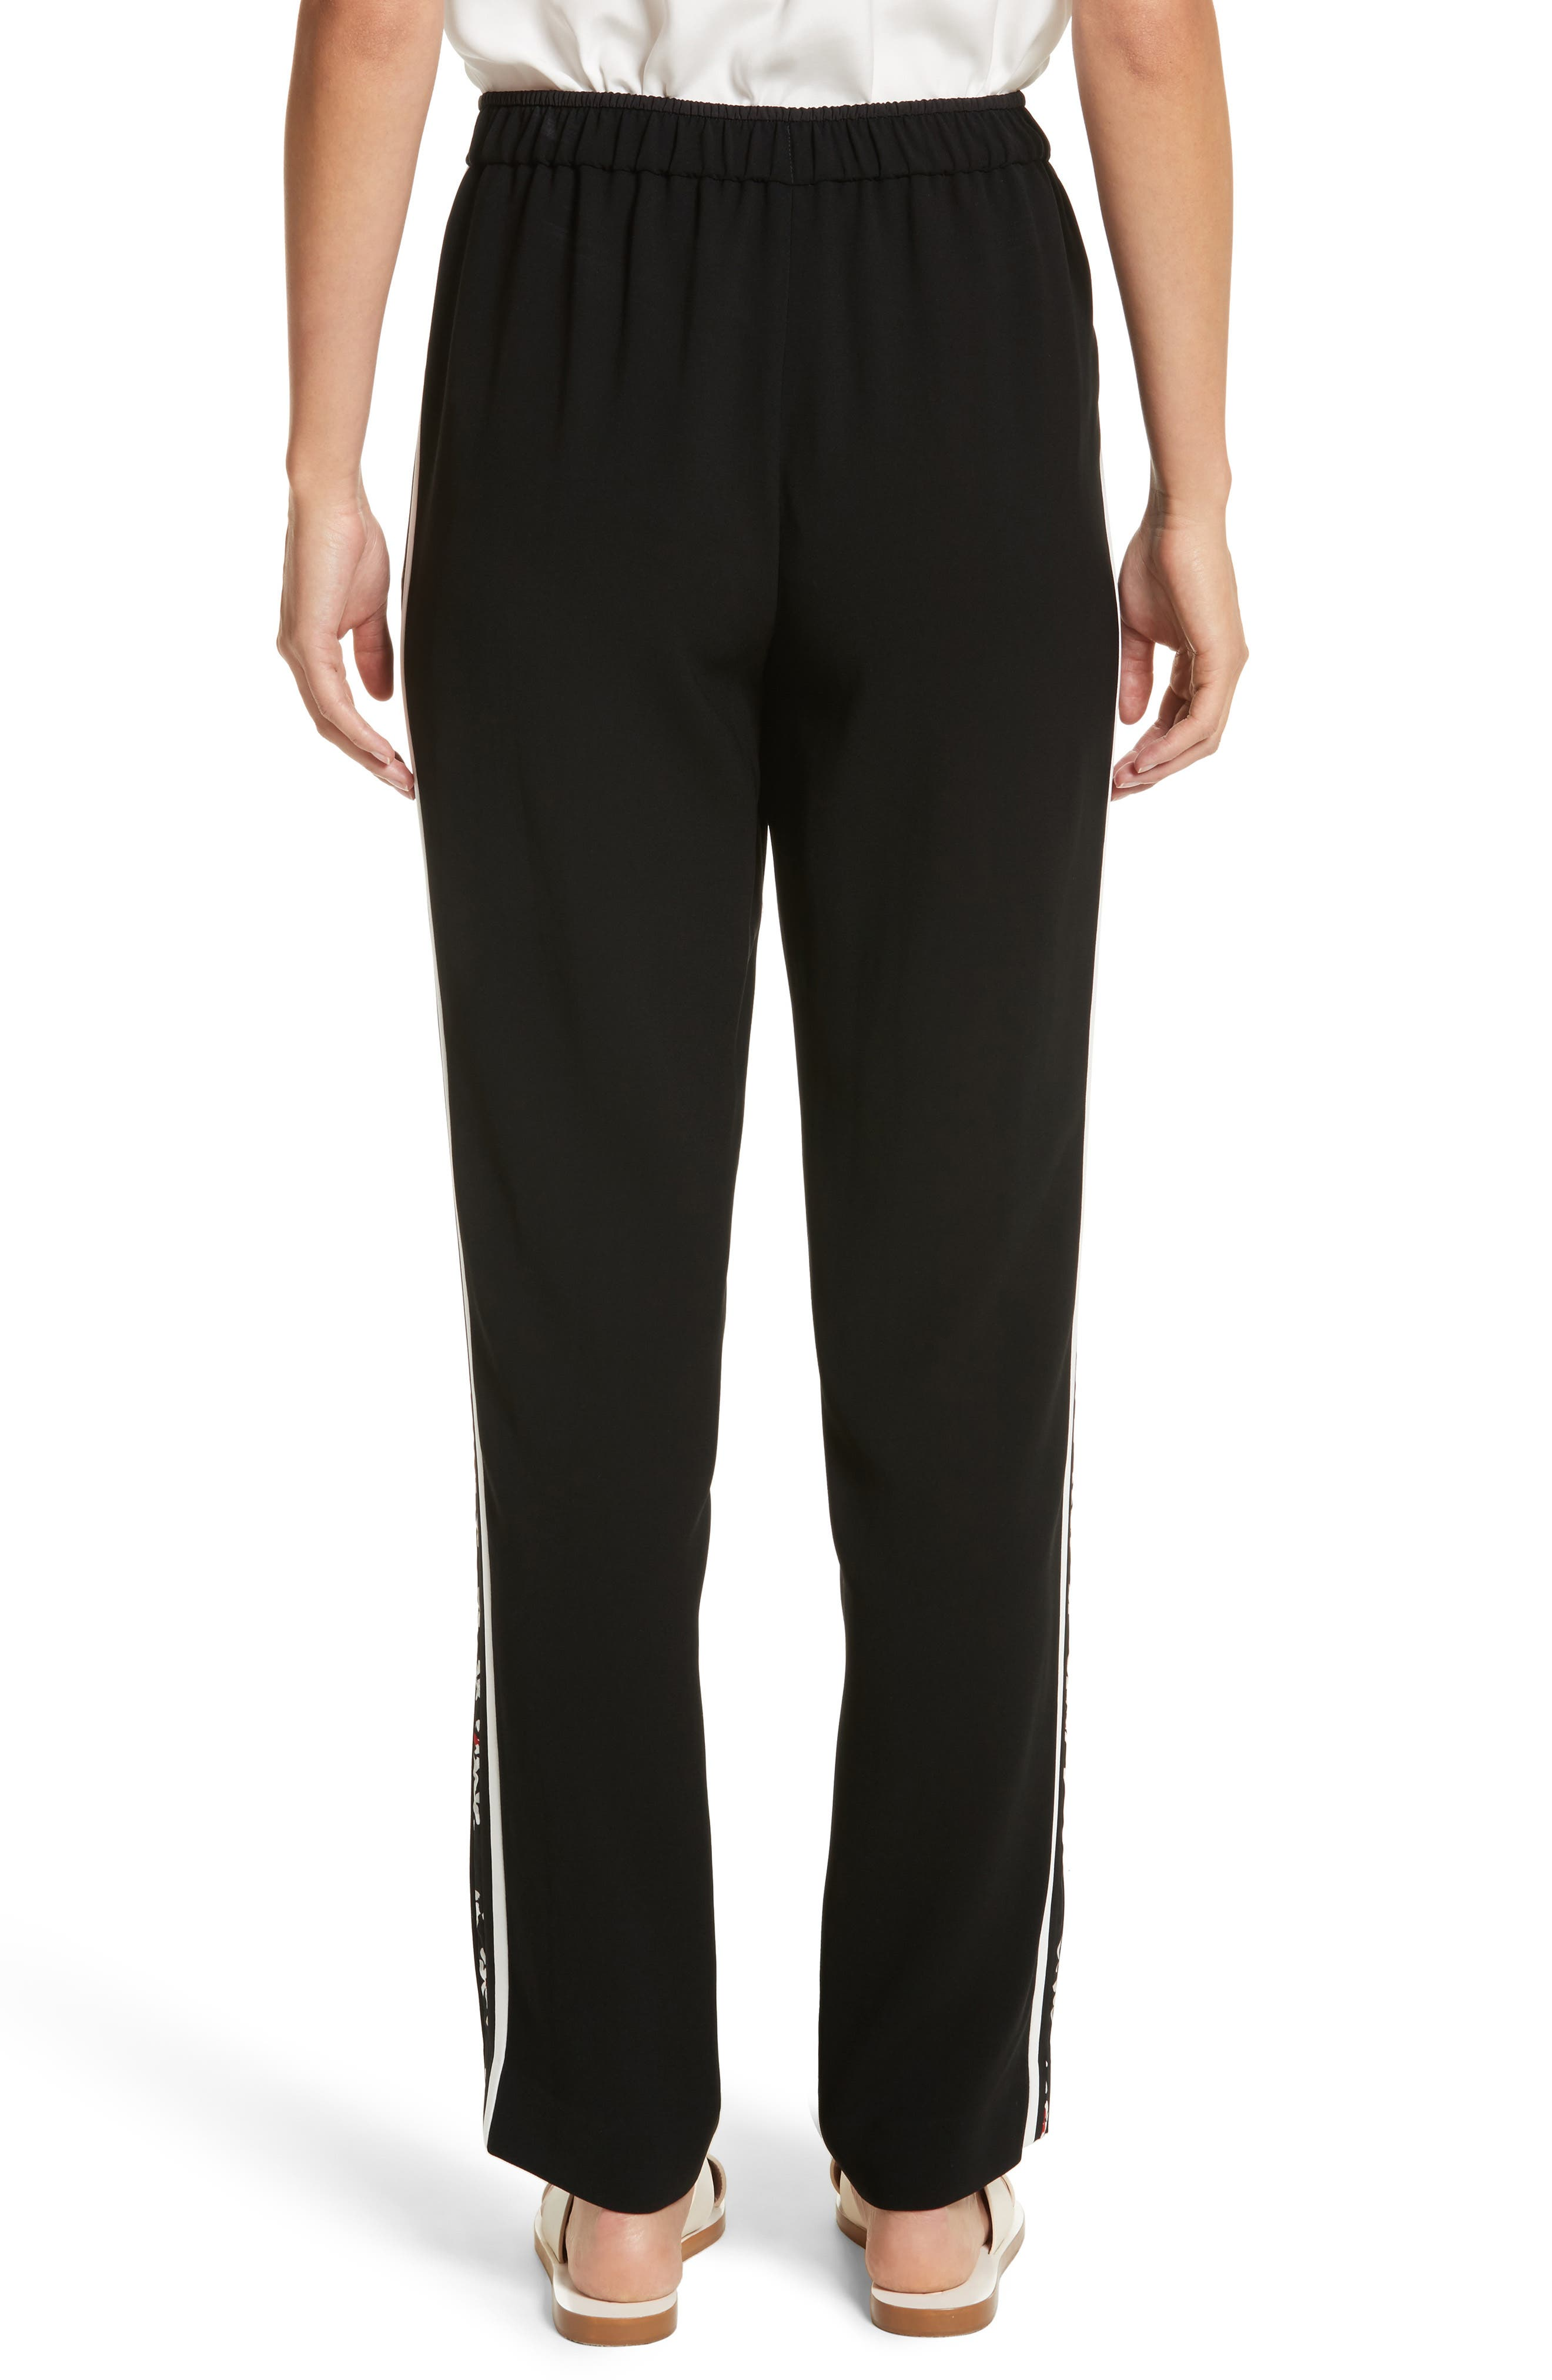 Floral Stripe Track Pants,                             Alternate thumbnail 3, color,                             Black